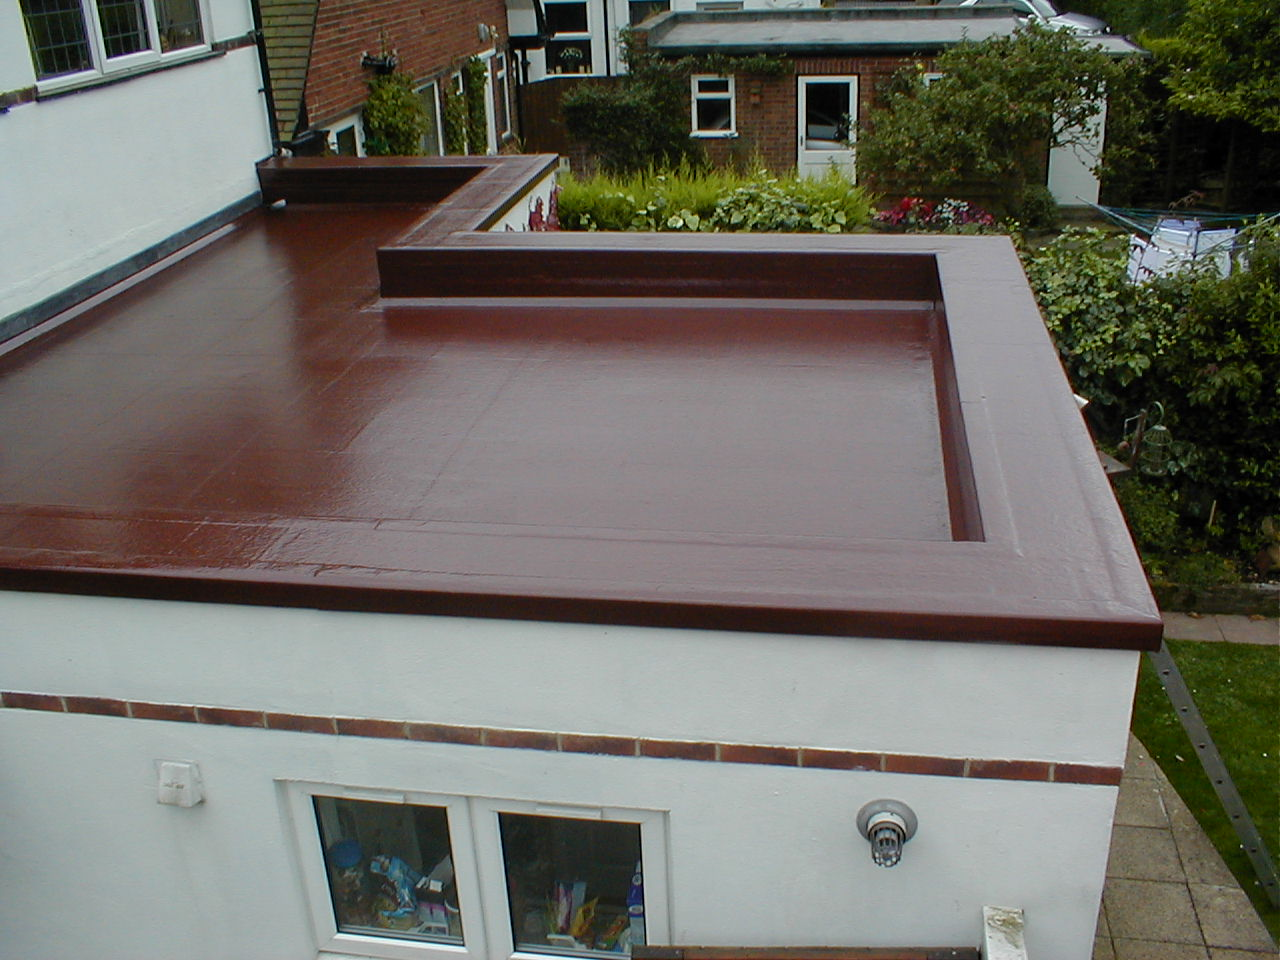 Roof Design Ideas: Essex Flat Roofing